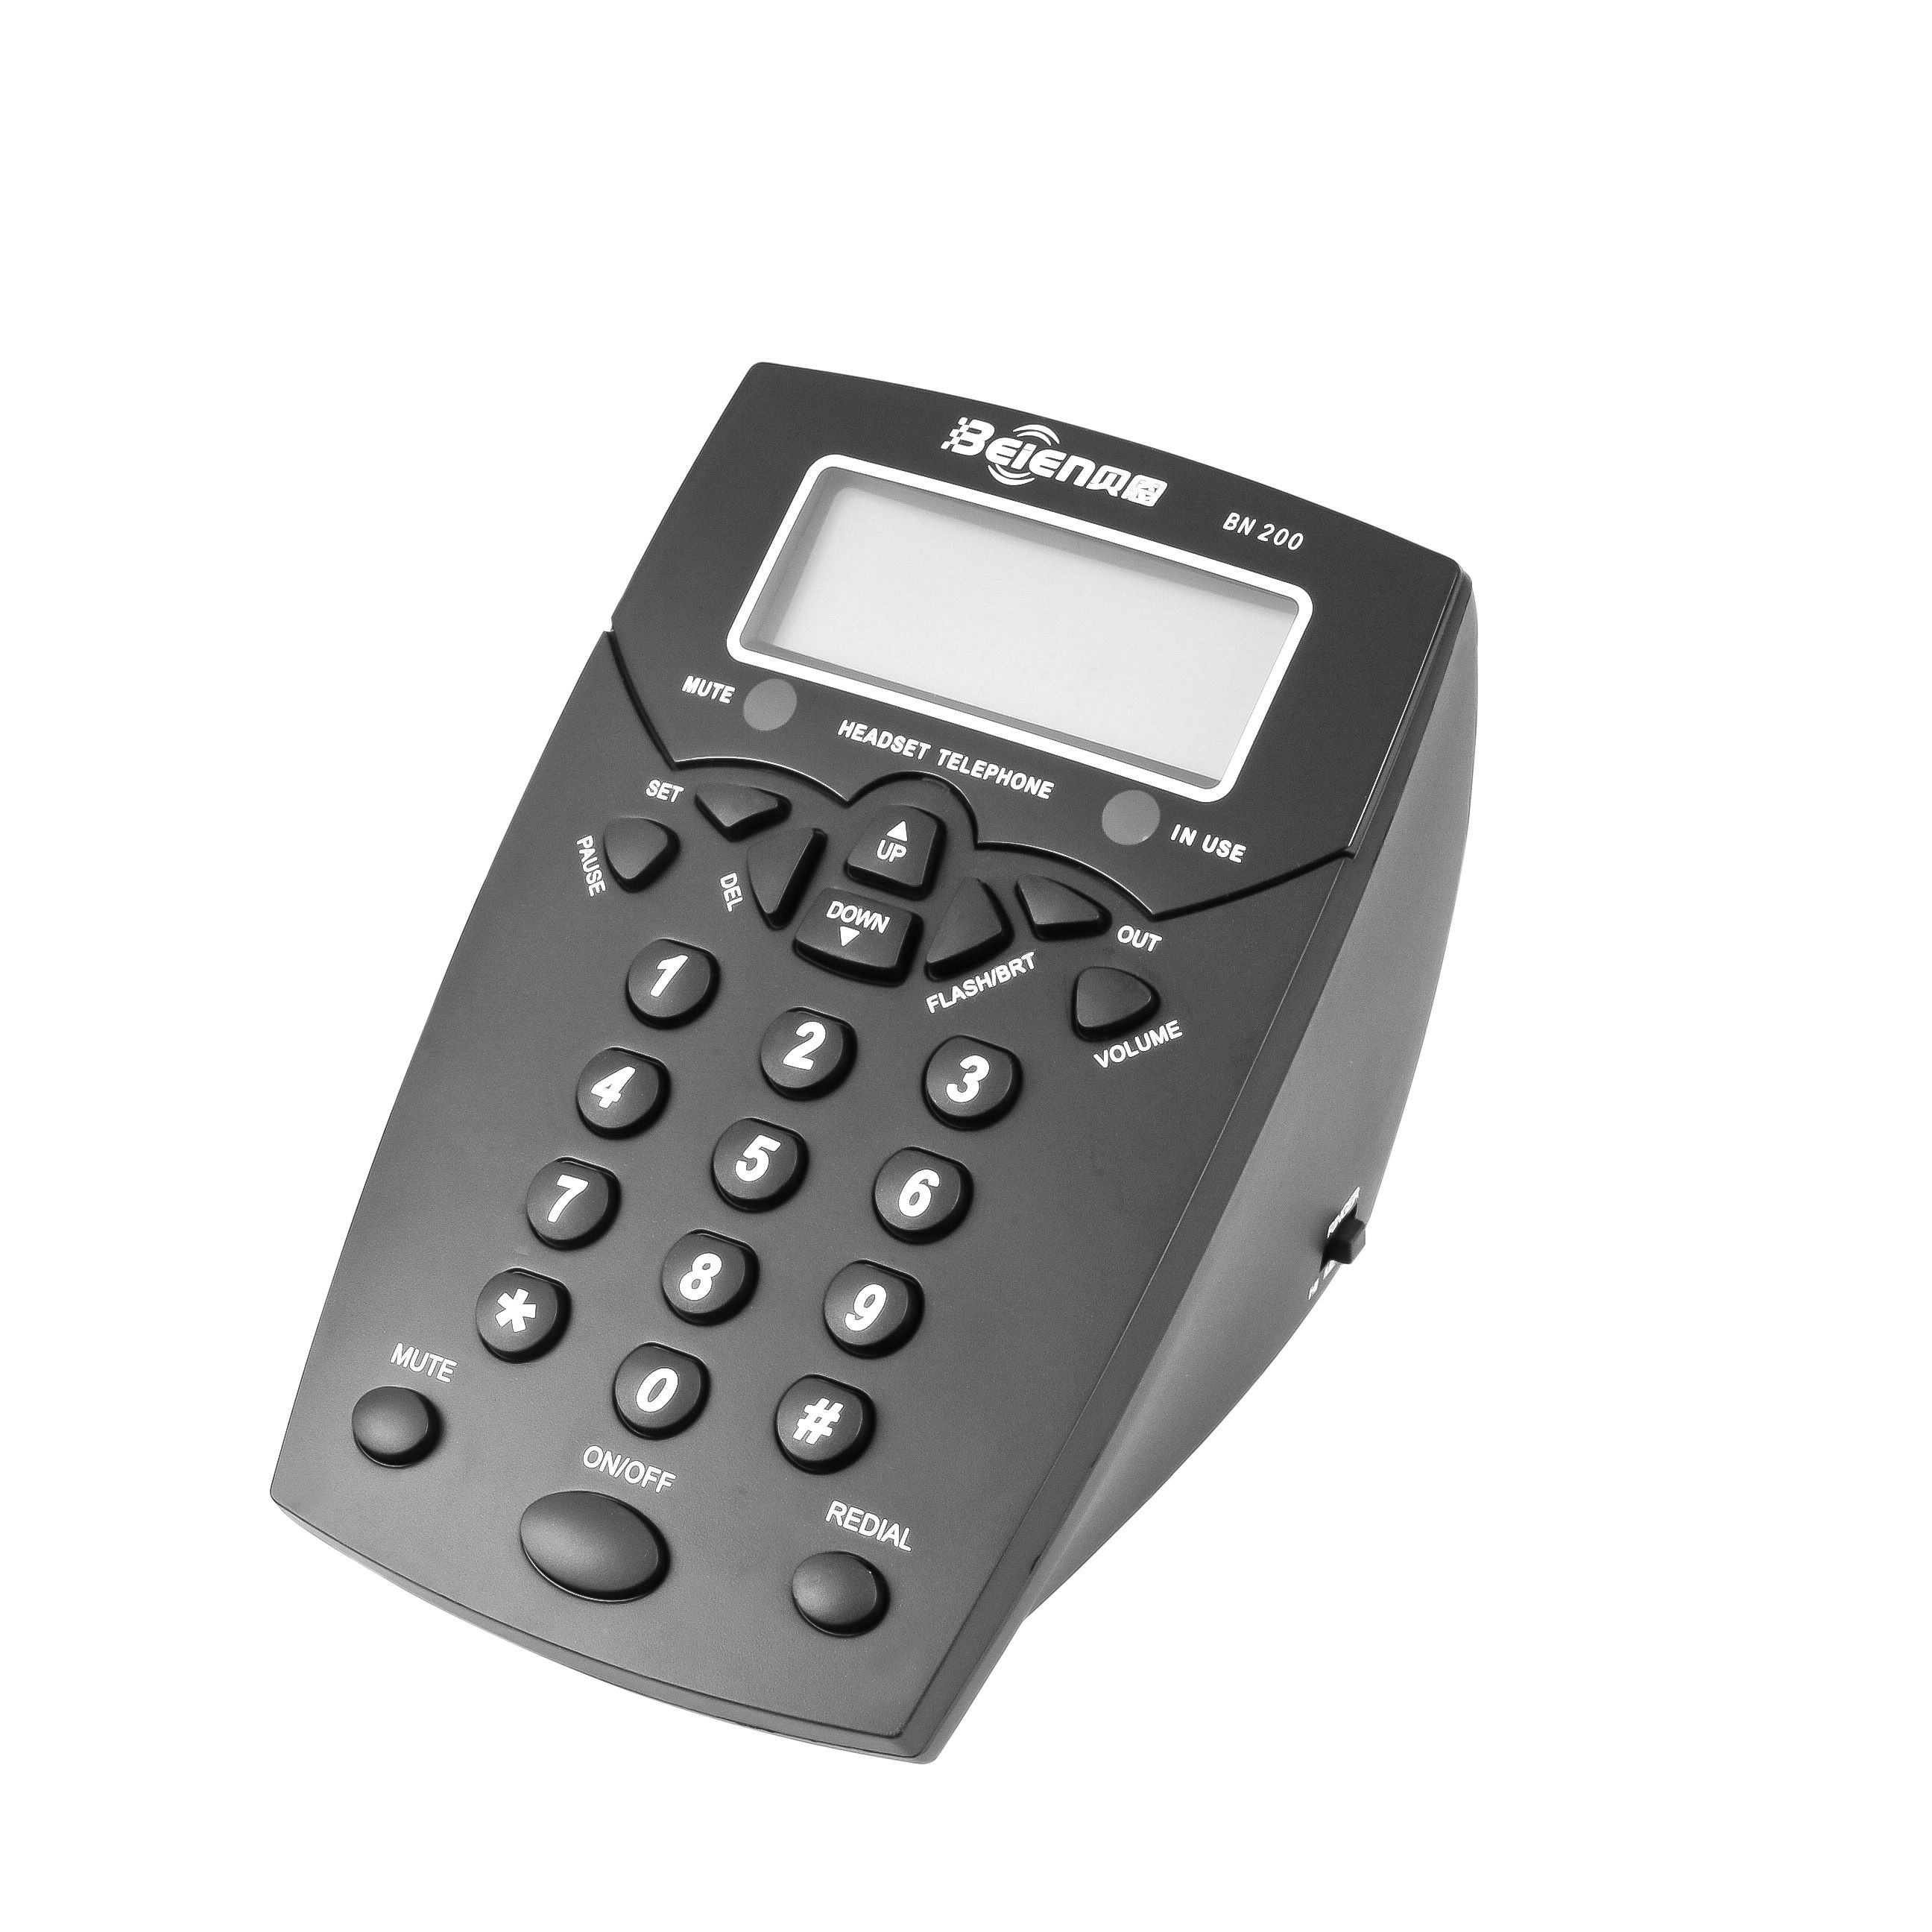 Beien Hot Jual BN200 + A16 Headset Call Center <span class=keywords><strong>Telepon</strong></span> <span class=keywords><strong>Caller</strong></span> <span class=keywords><strong>ID</strong></span>